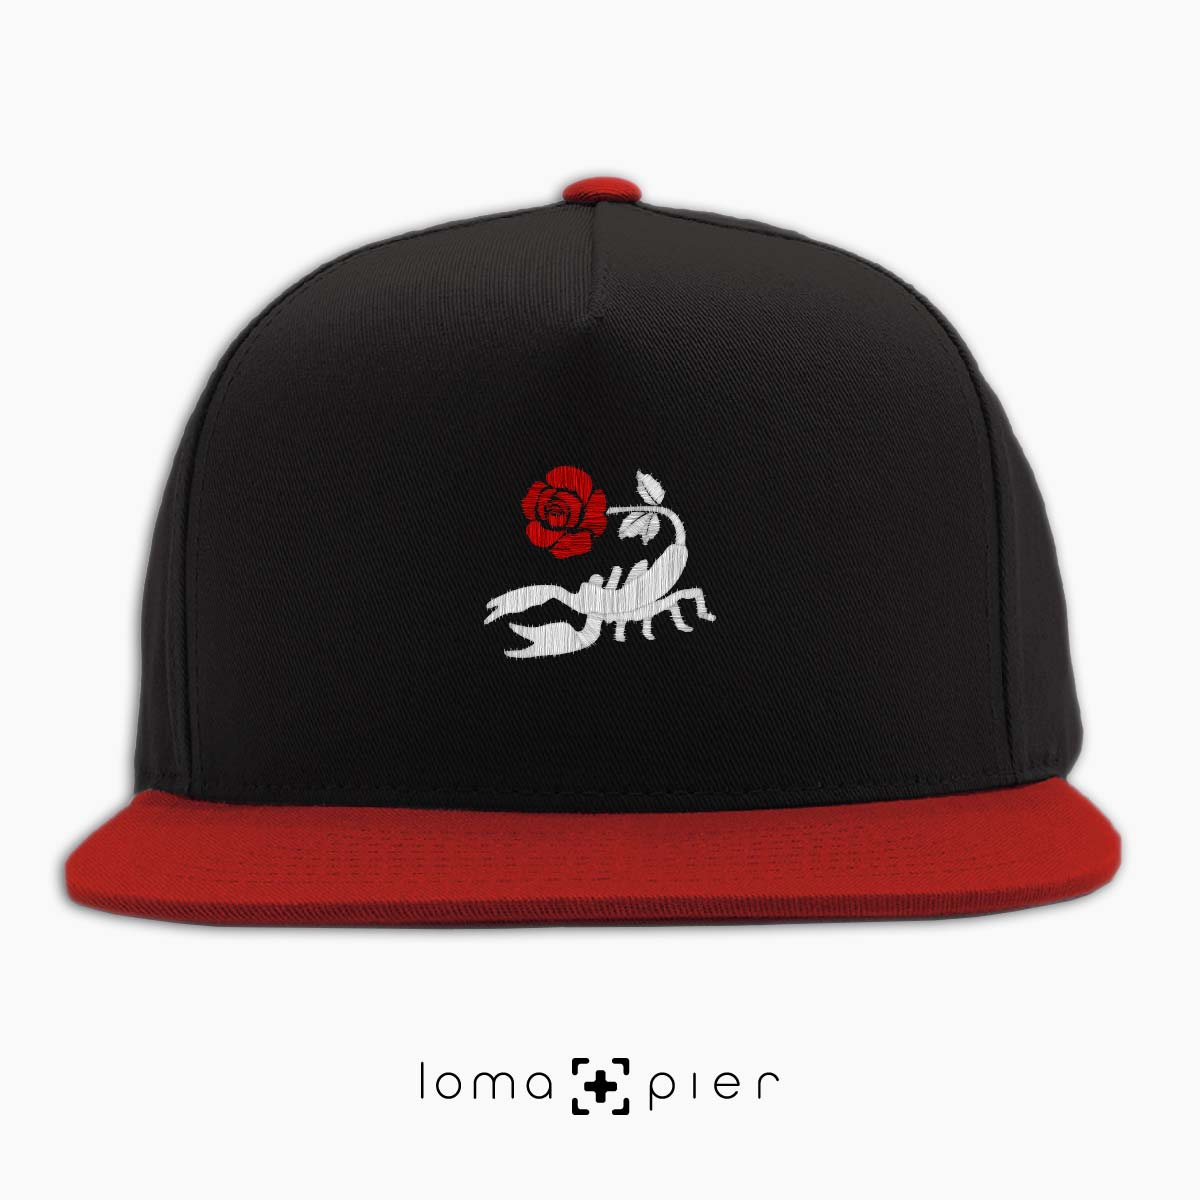 5f02019921c SCORPION ROSE icon embroidered on a black and red classic snapback hat with  multicolor thread by